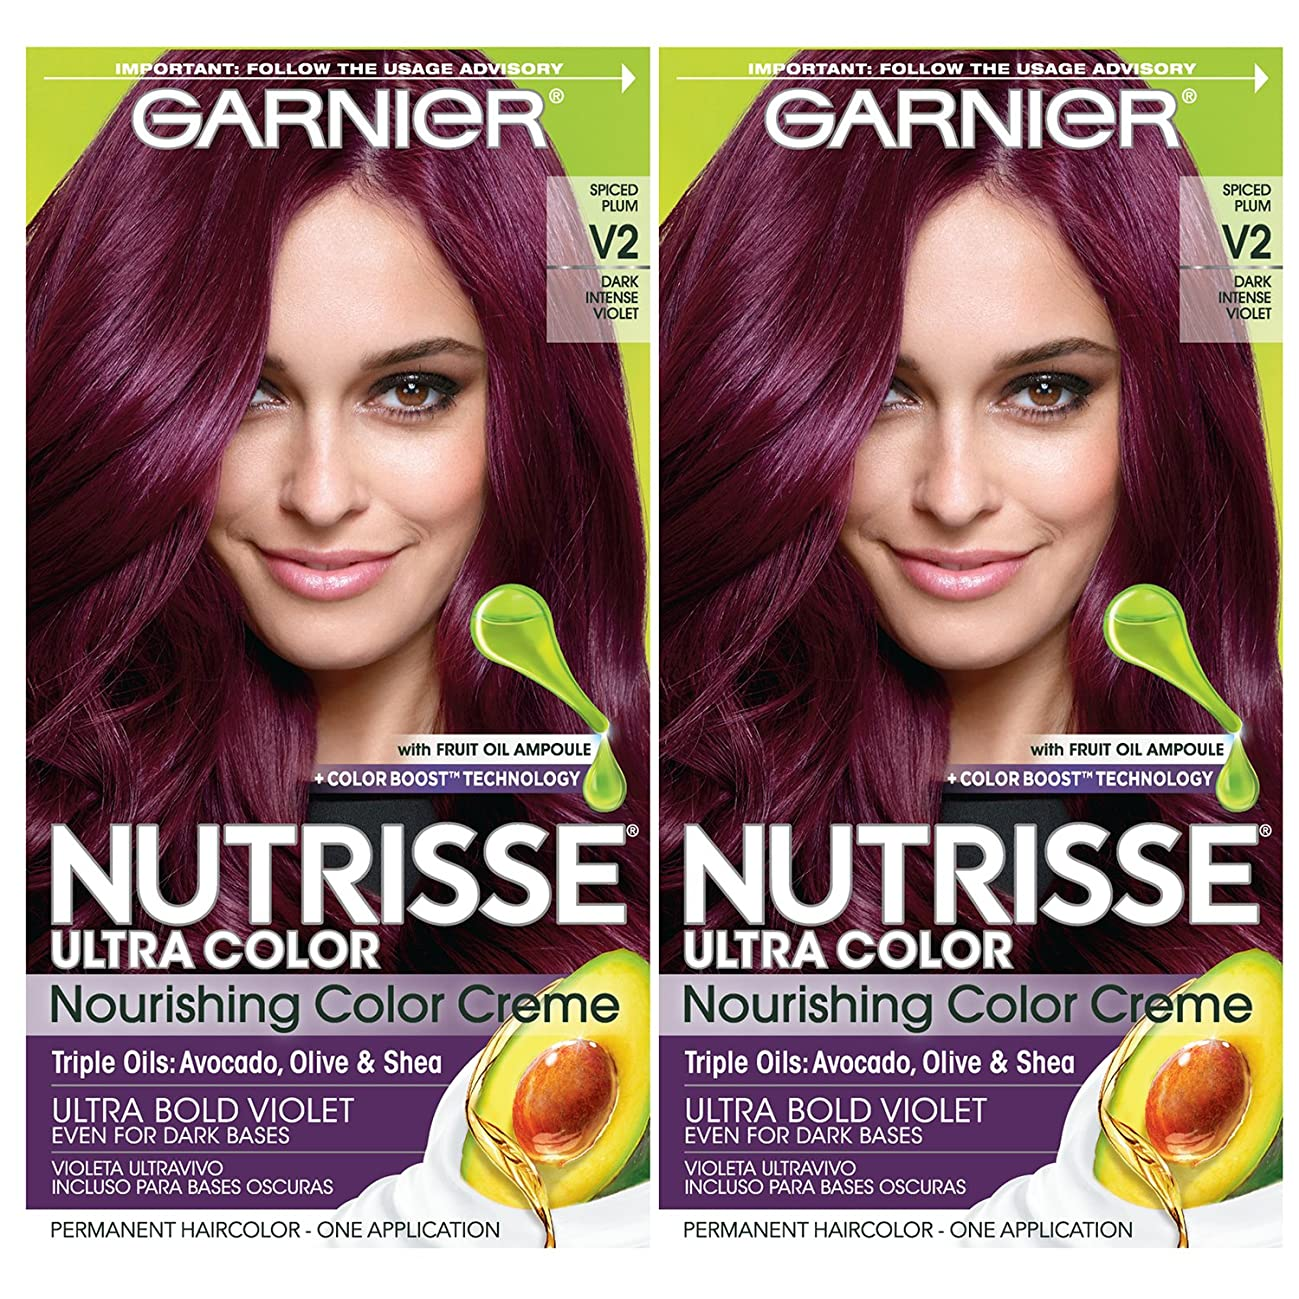 Garnier Nutrisse Ultra Color Nourishing Permanent Hair Color Cream, V2 Dark Intense Violet (2 Count) Purple Hair Dye